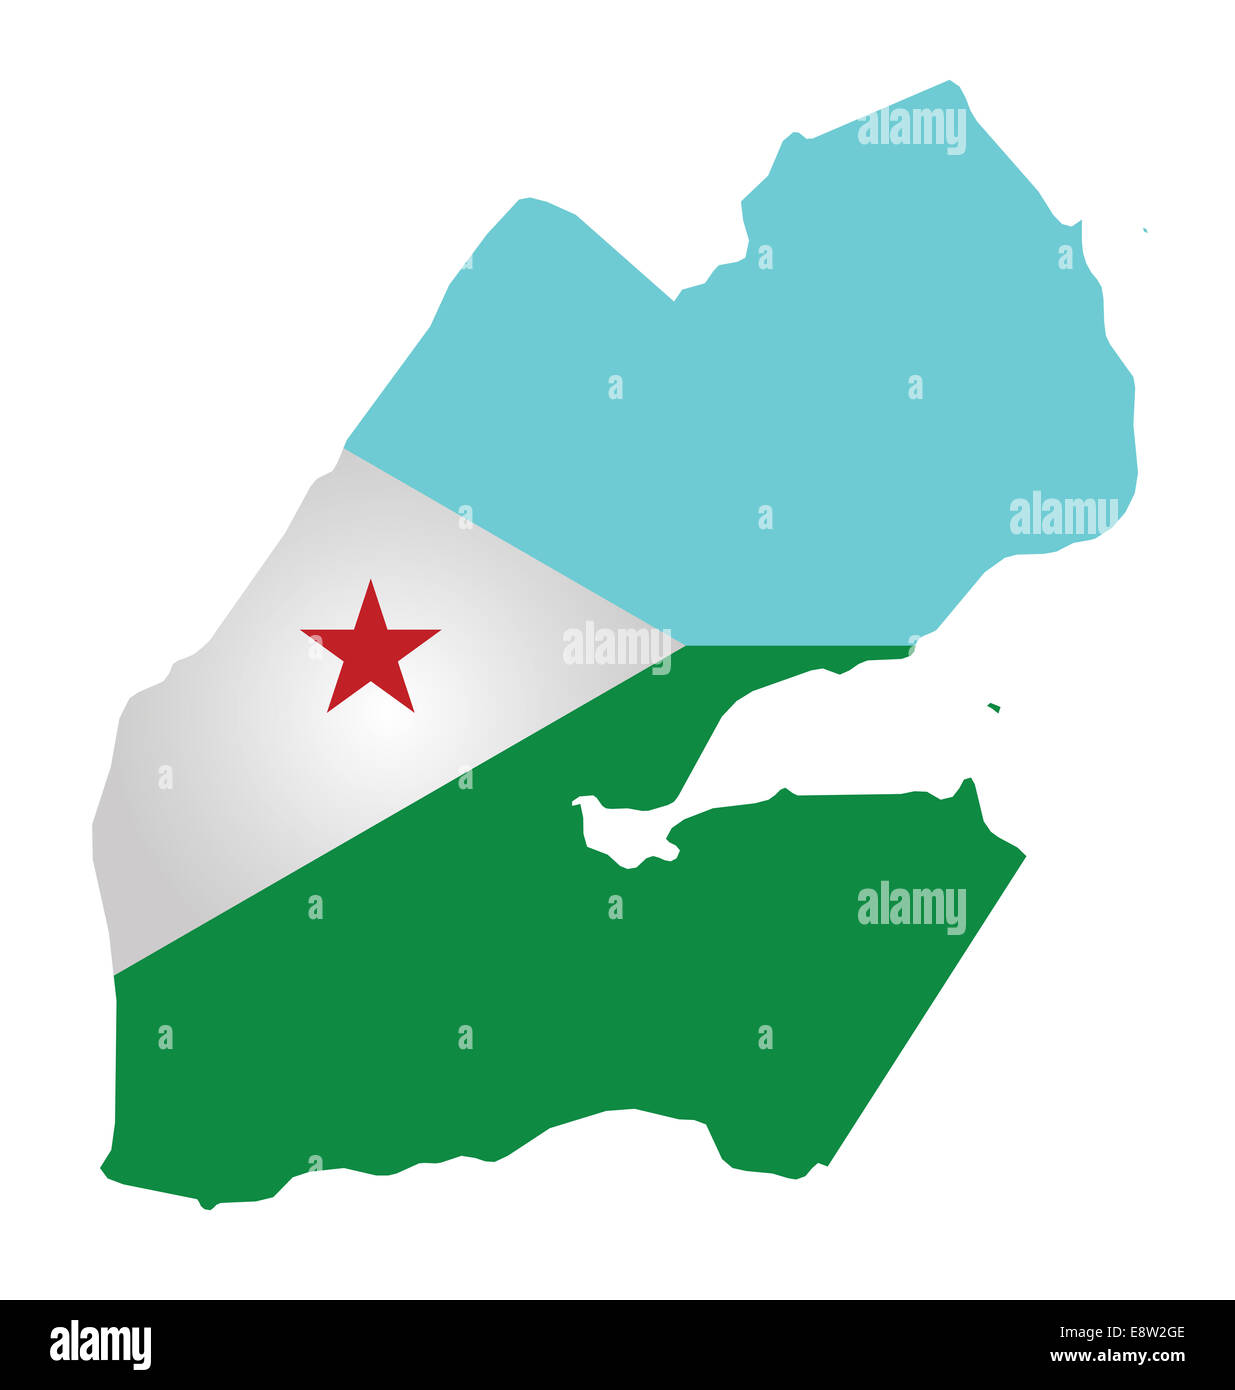 Flag Of The Republic Of Djibouti Overlaid On Outline Map Stock - Republic of djibouti map